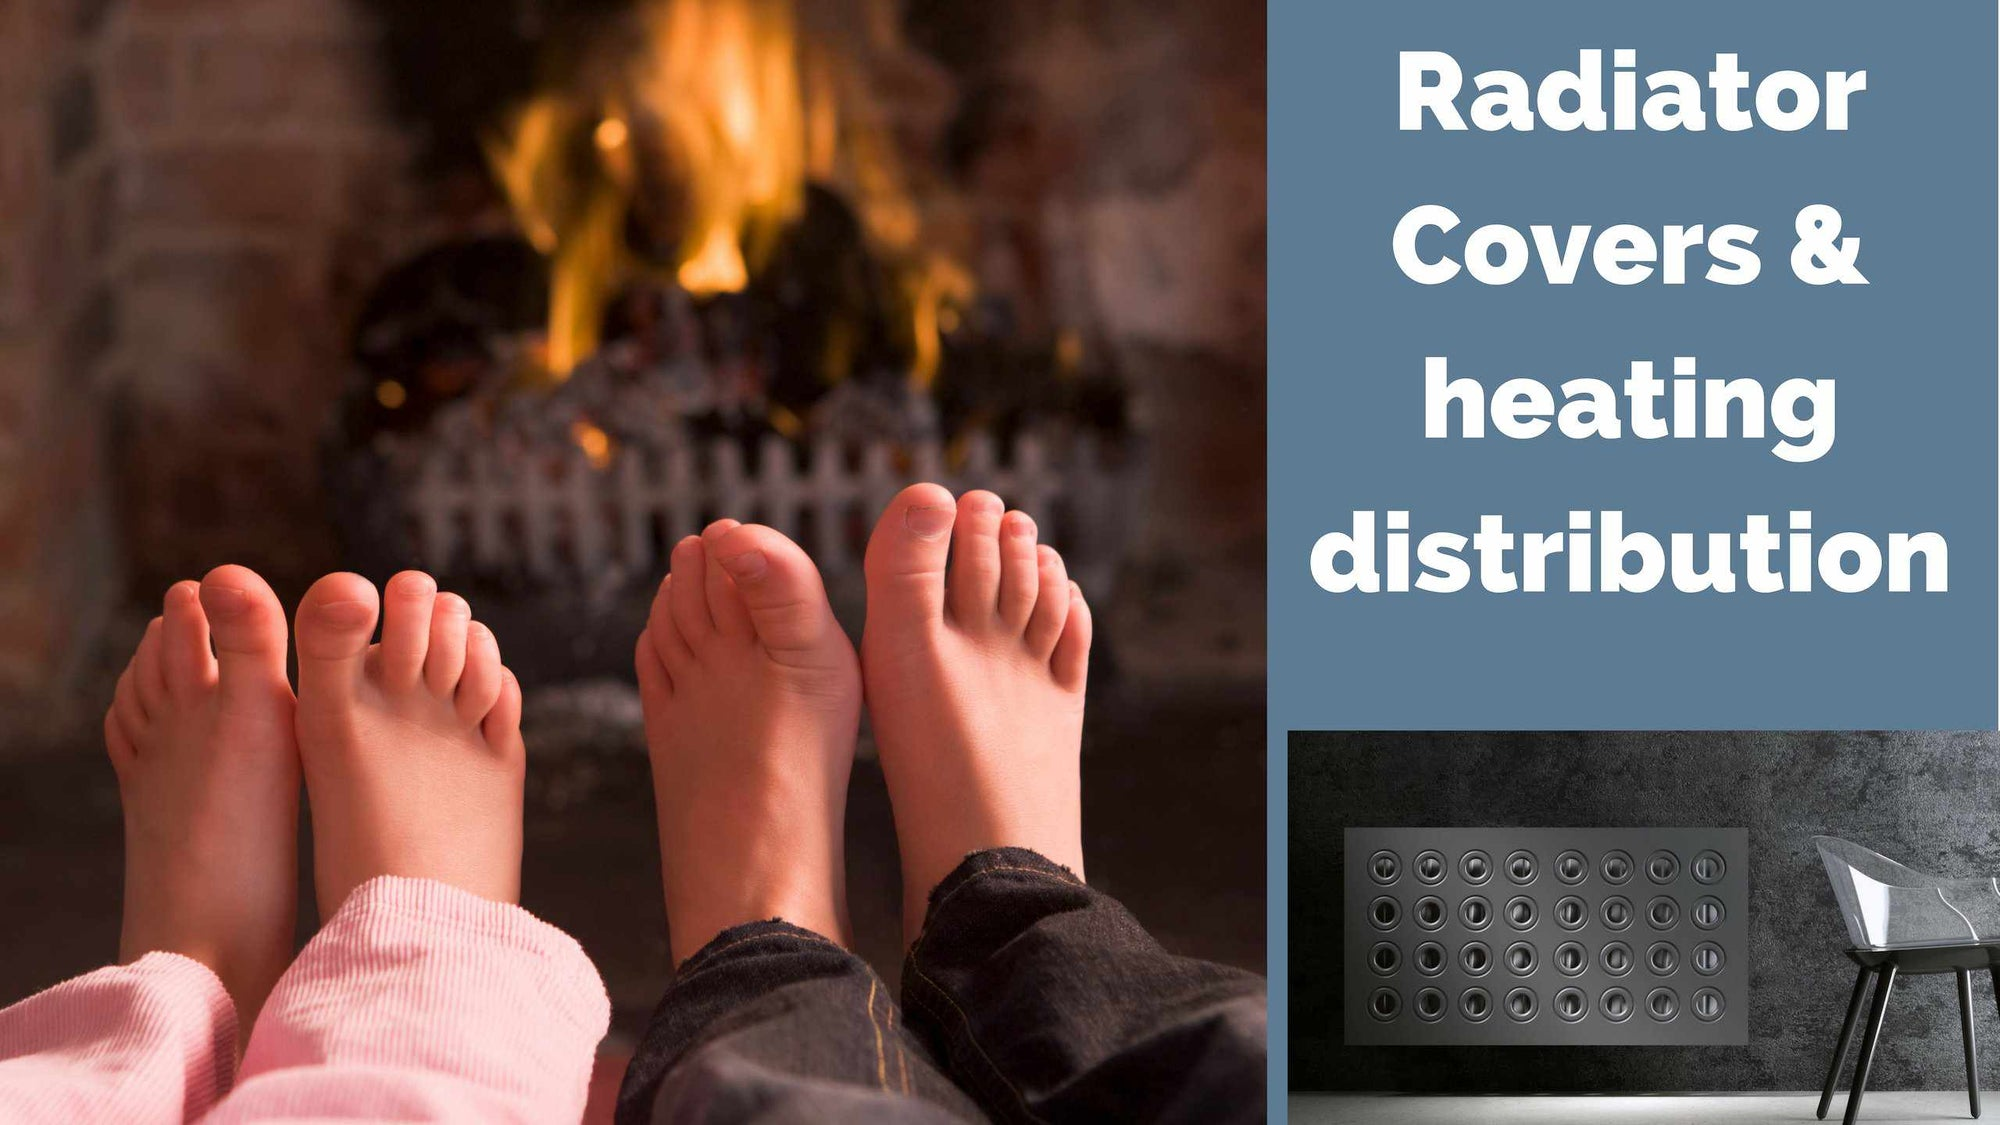 Radiator Covers and heating distribution